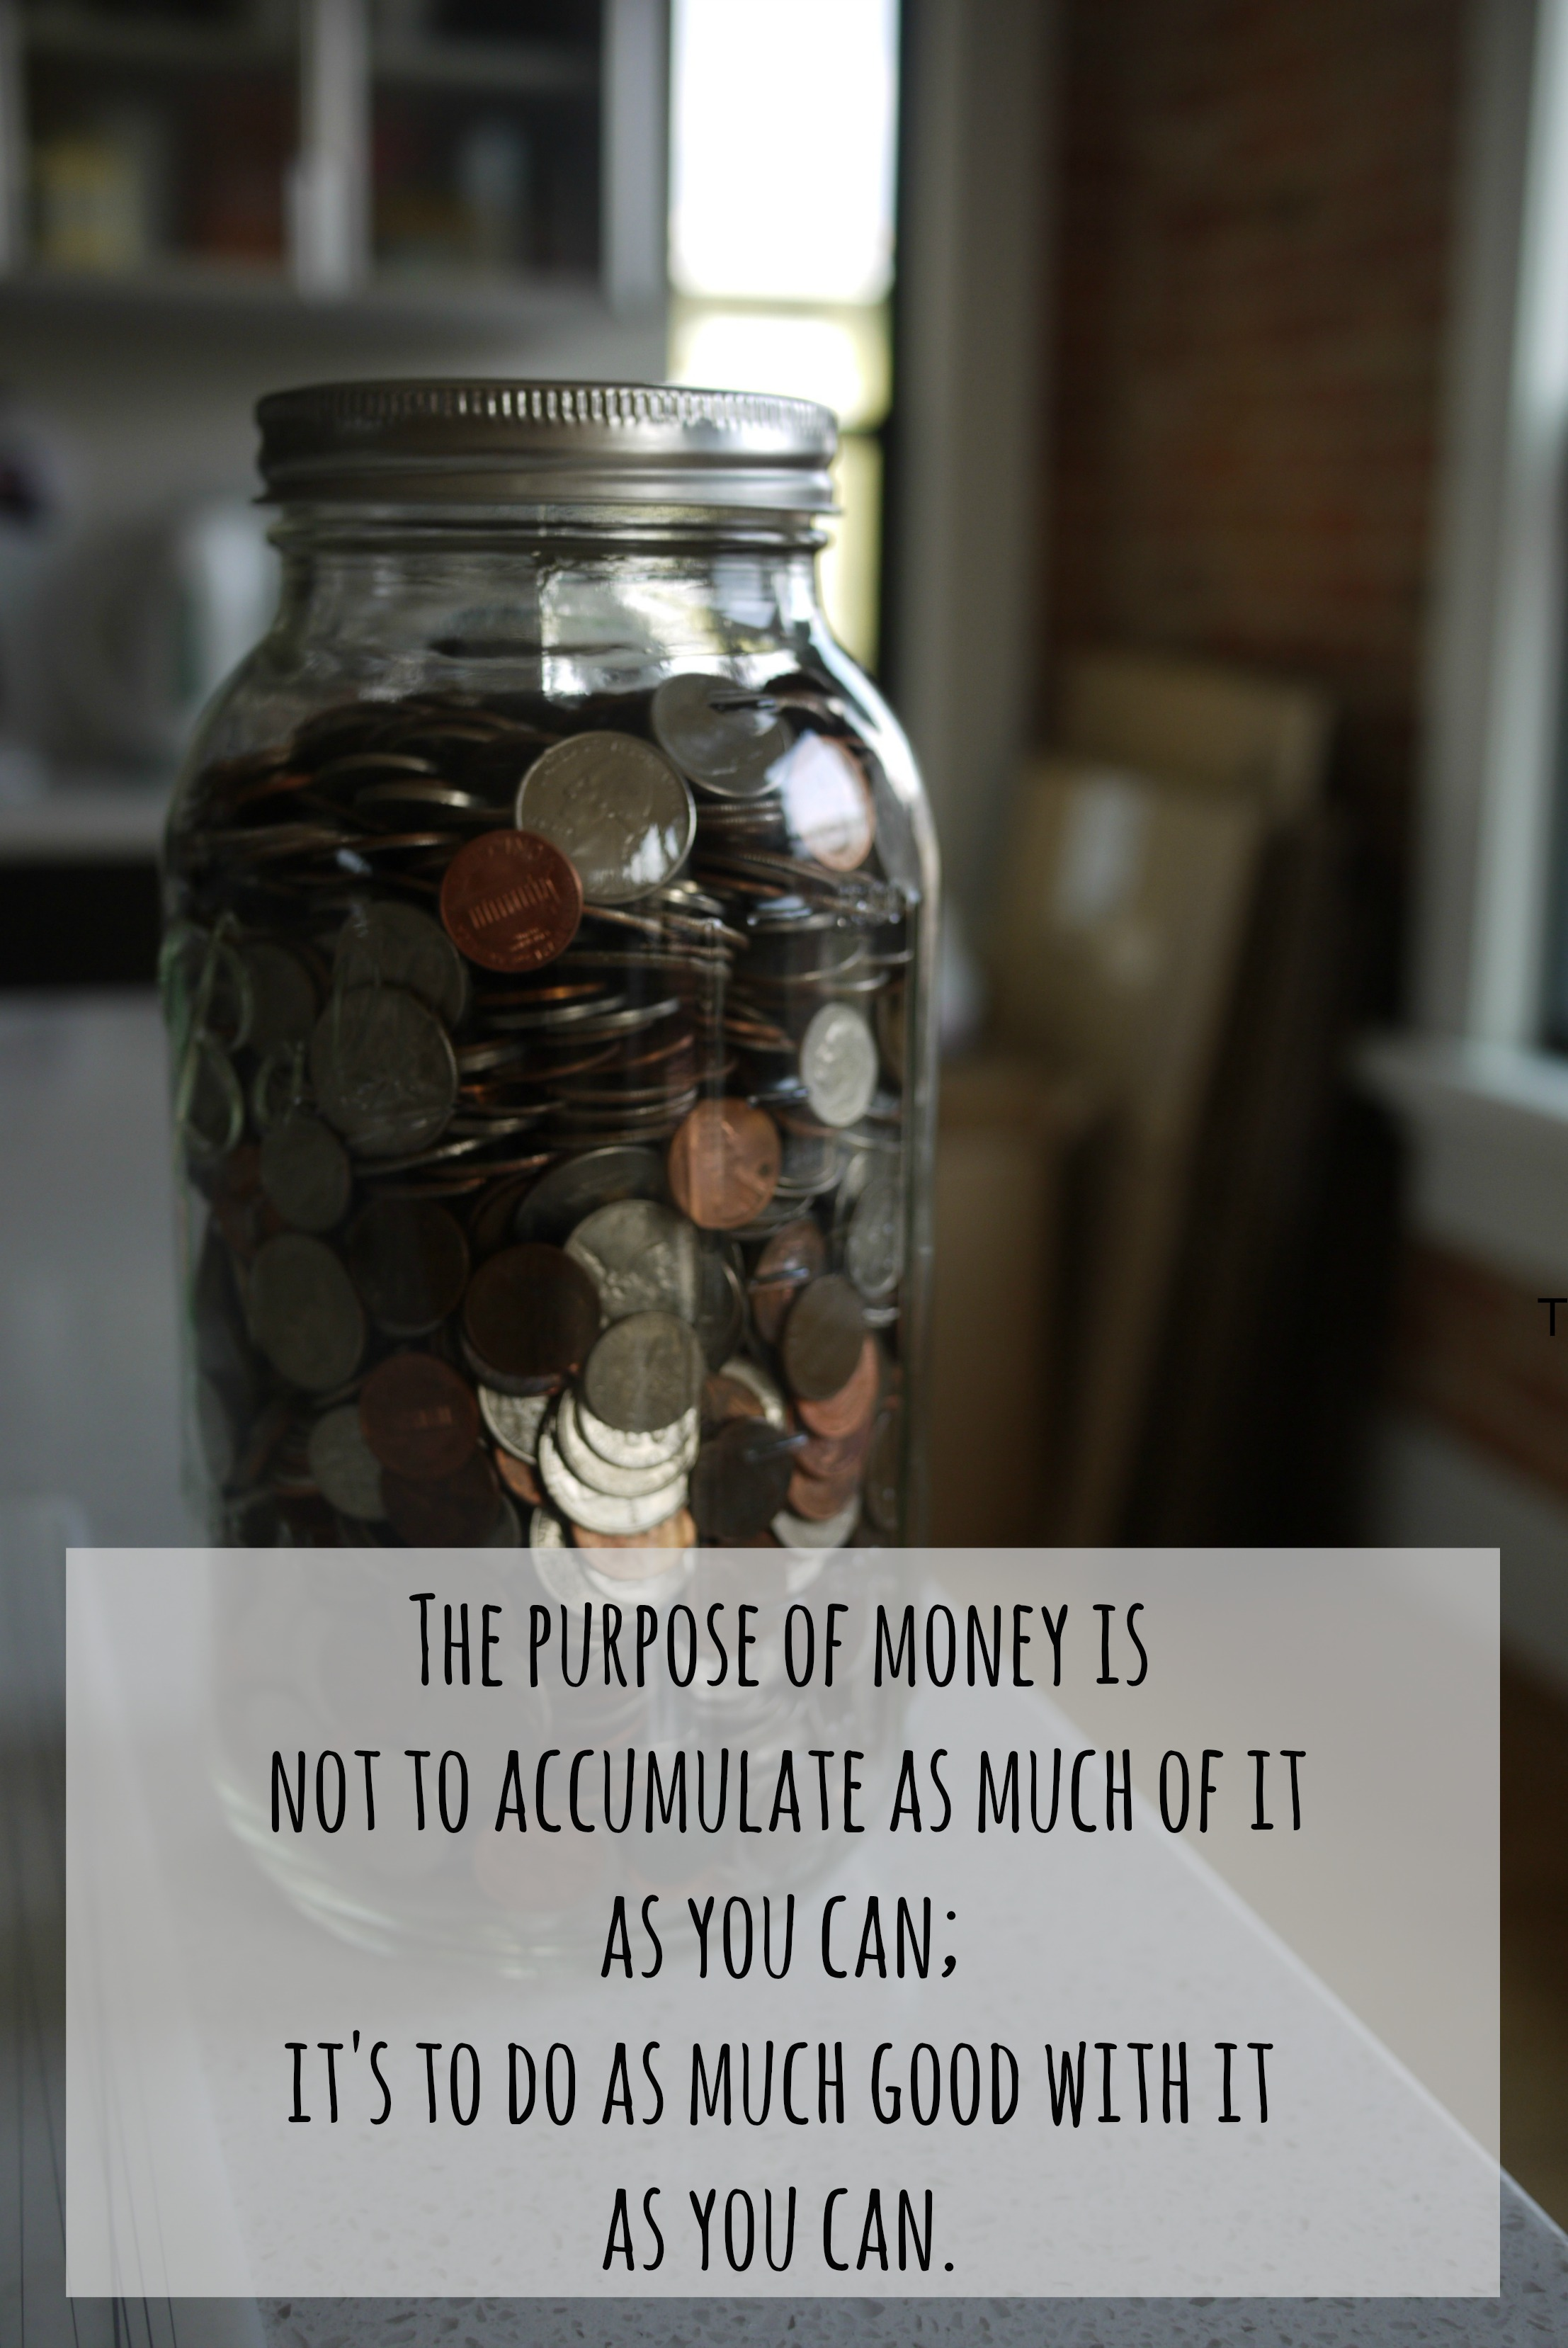 The purpose of money...